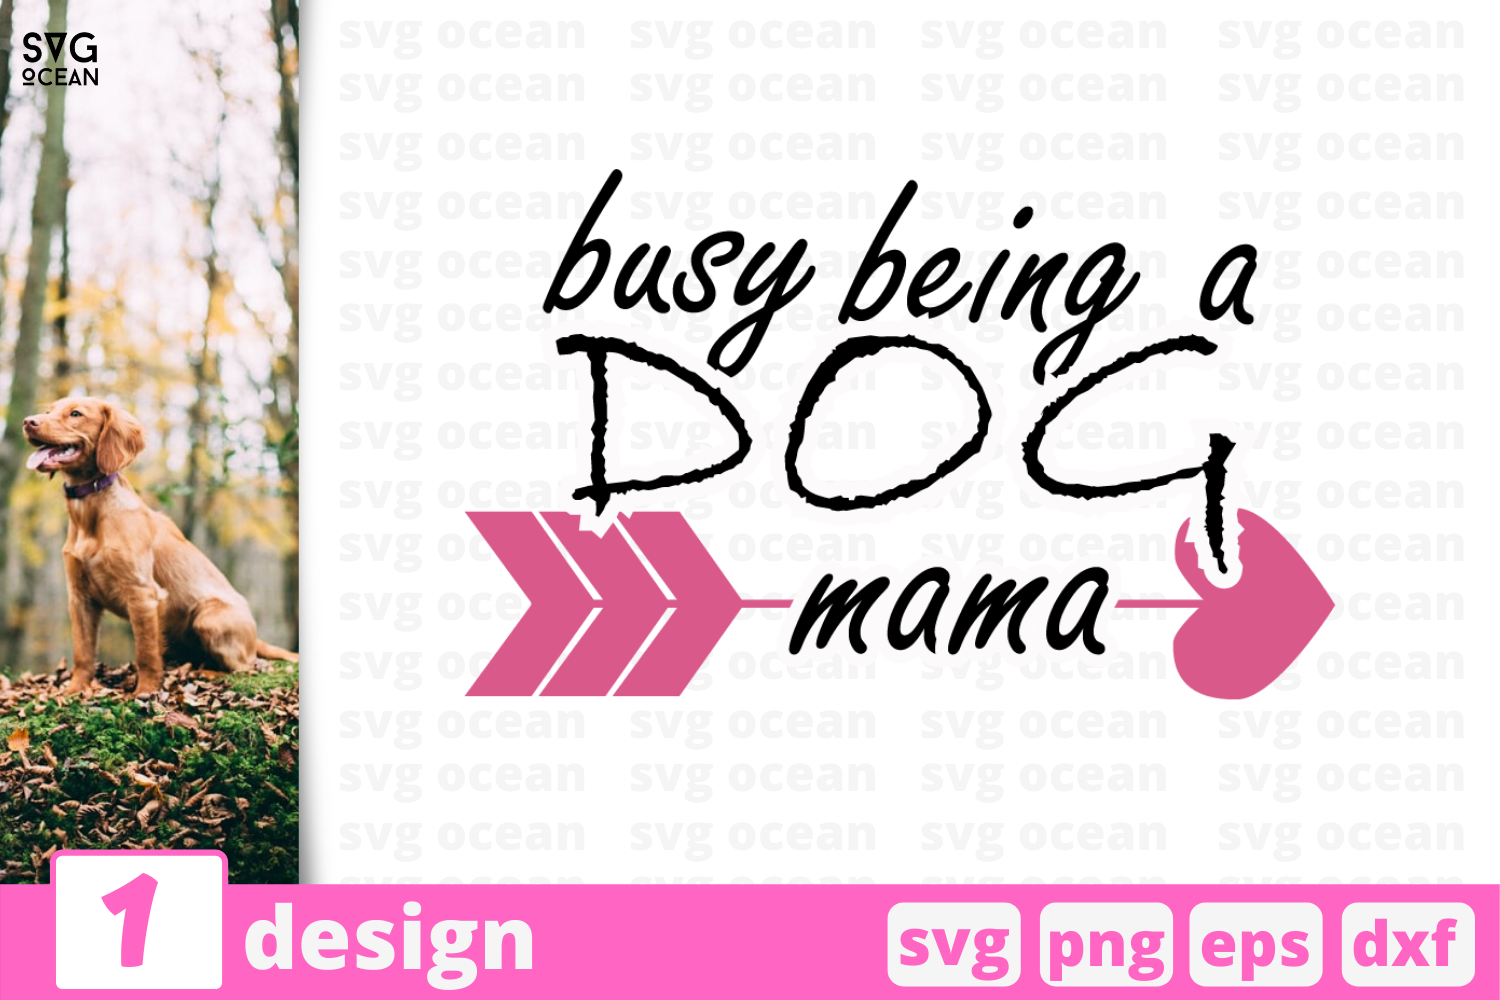 Download Free Dog Mama Graphic By Svgocean Creative Fabrica for Cricut Explore, Silhouette and other cutting machines.